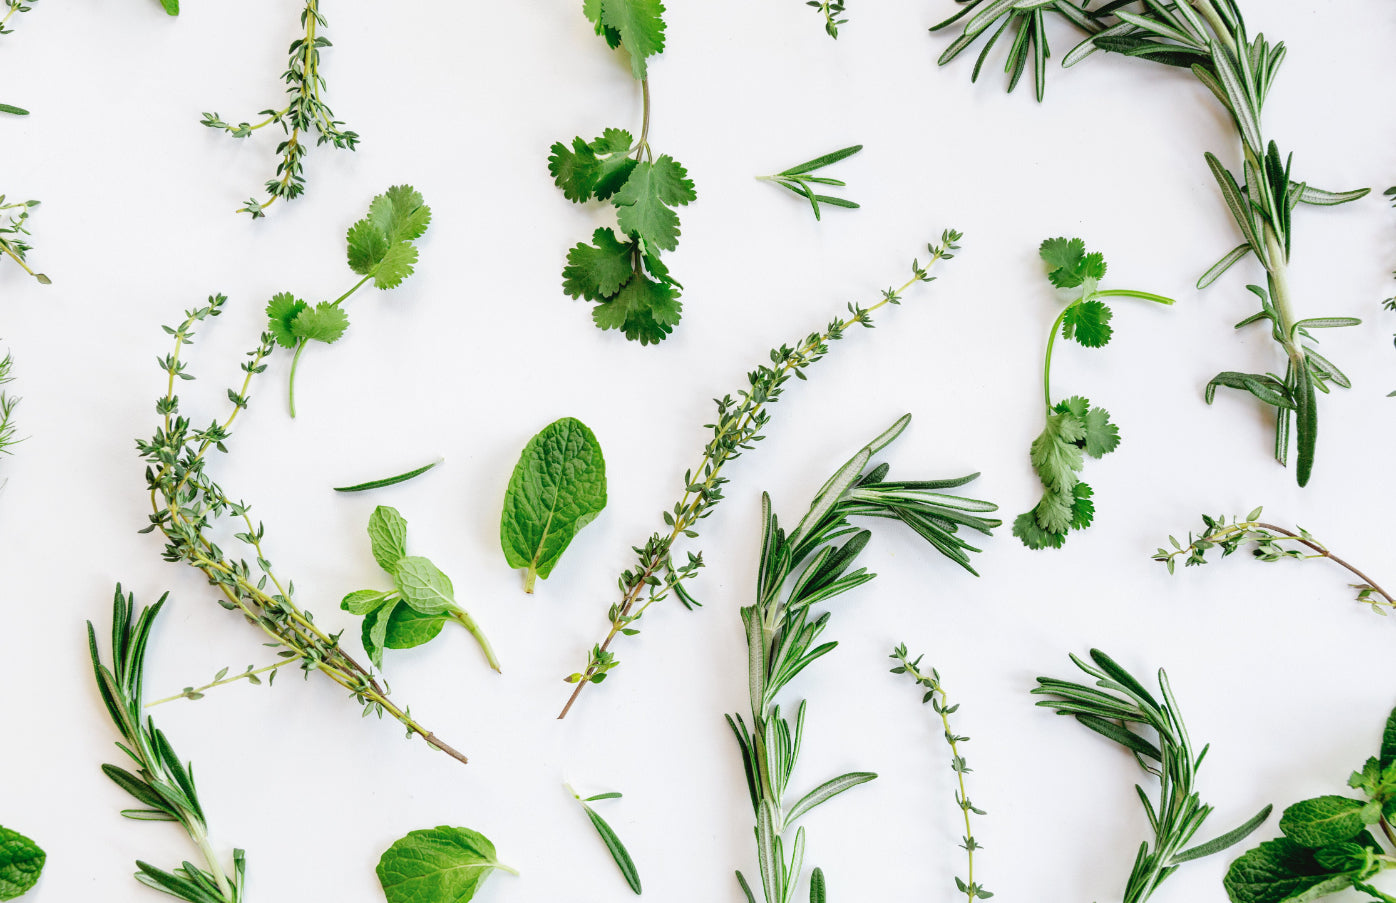 Green tea parsley positive effects